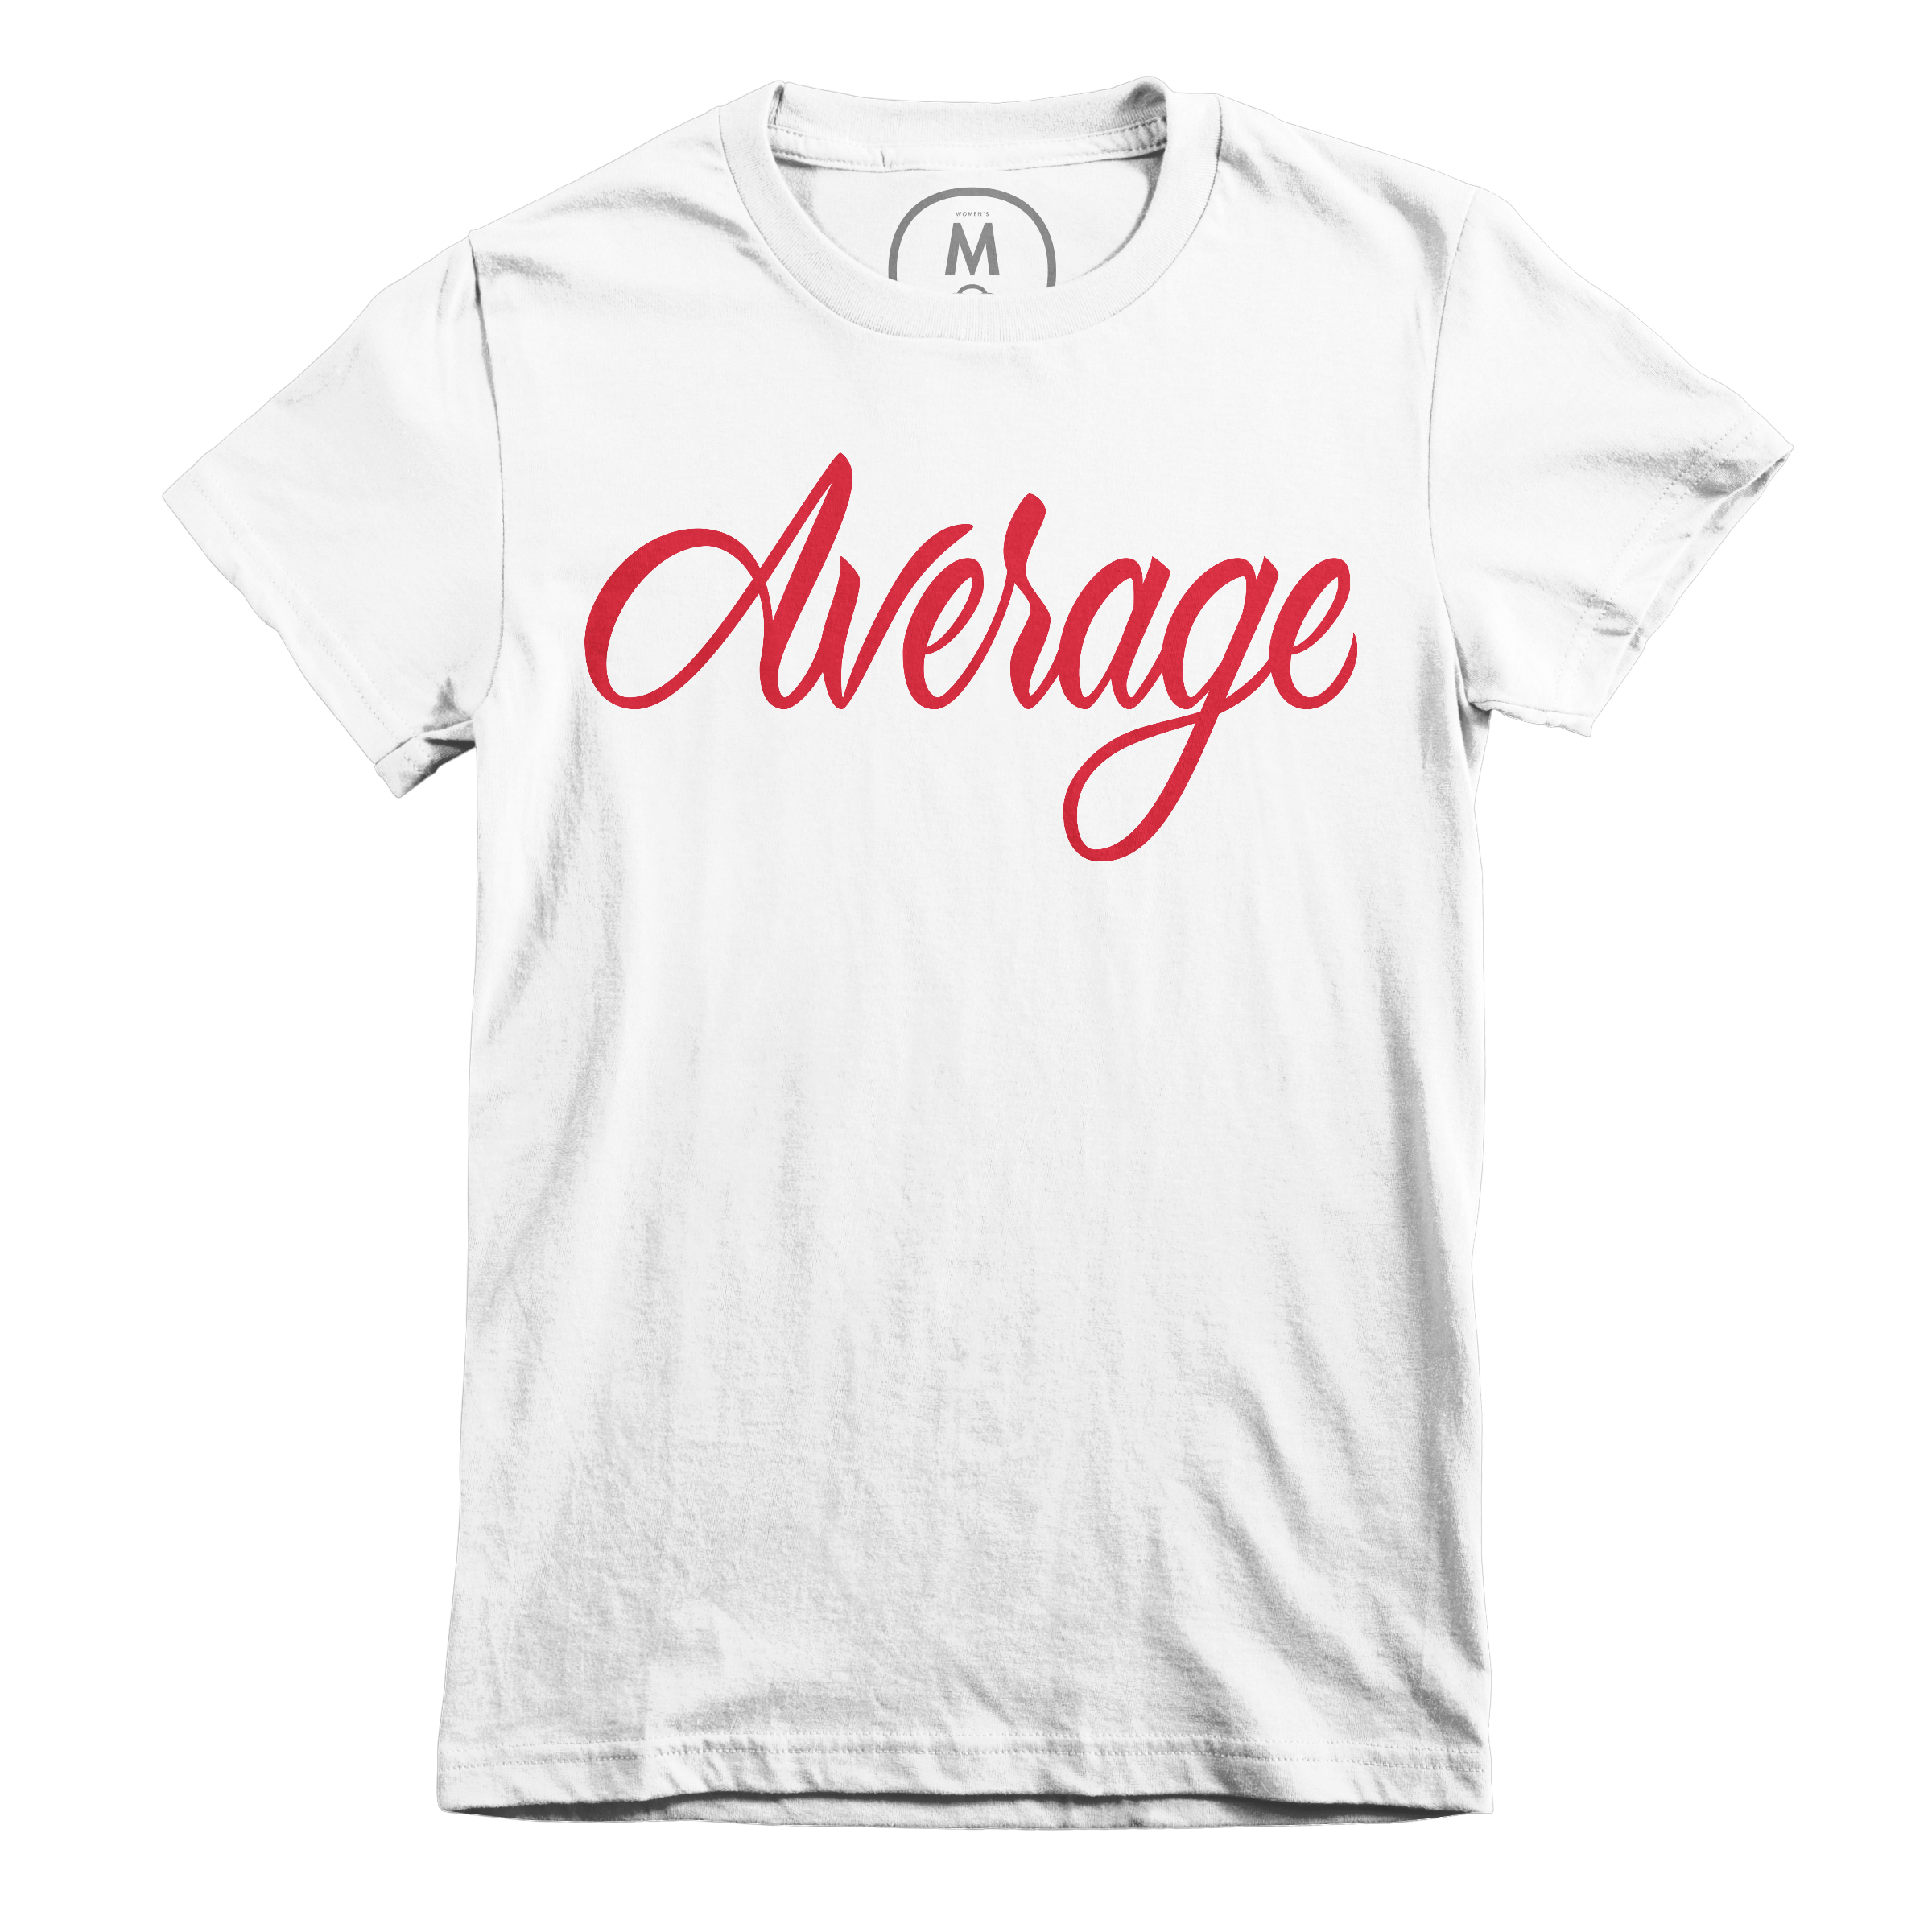 Your Average Tee White (Women's)